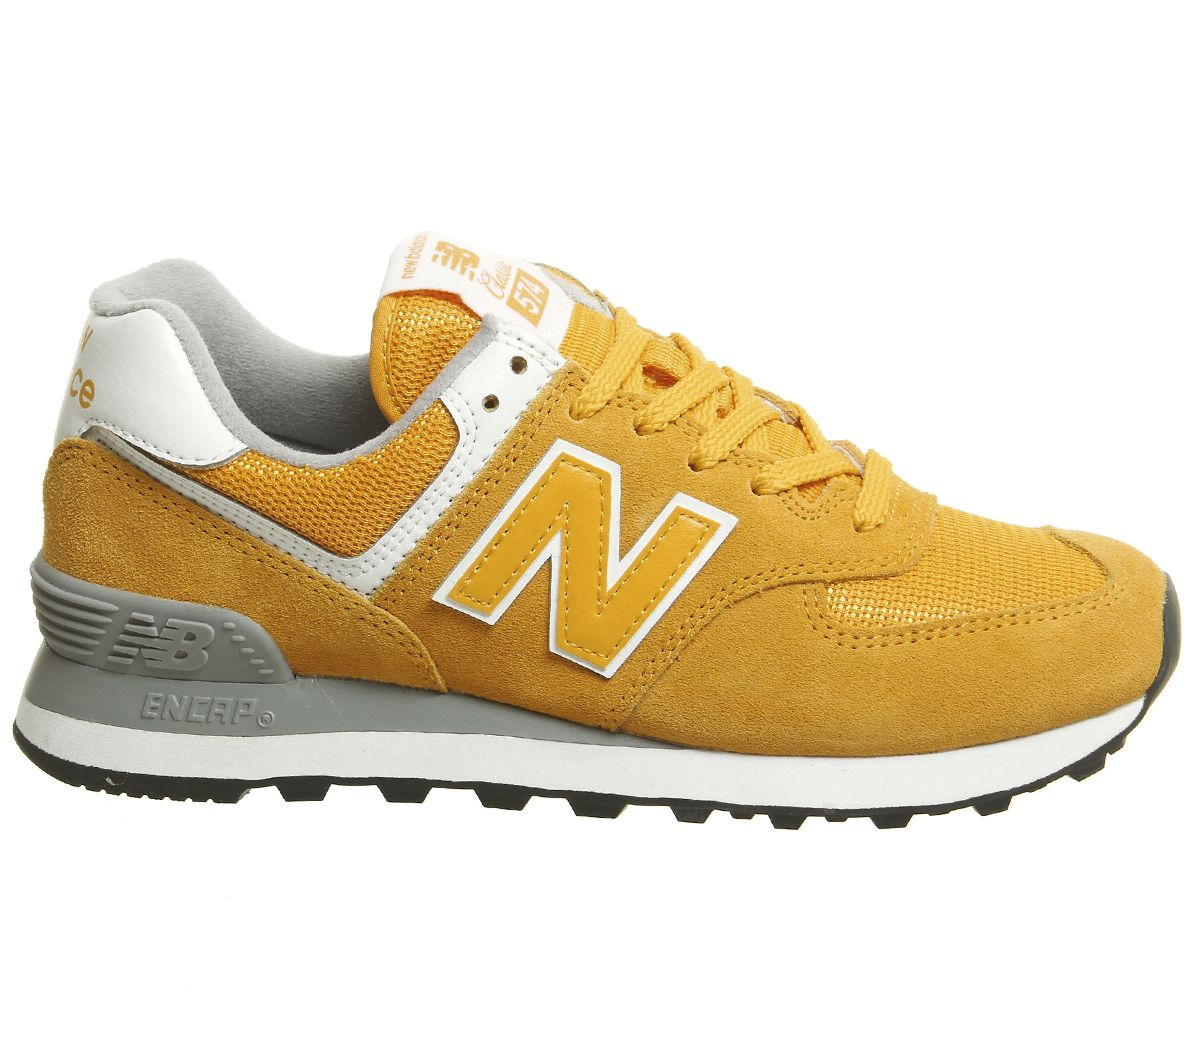 a5c3e1a39fd Double tap to zoom into the image. New Balance, Wl574 Trainers, Gold Rush  ...